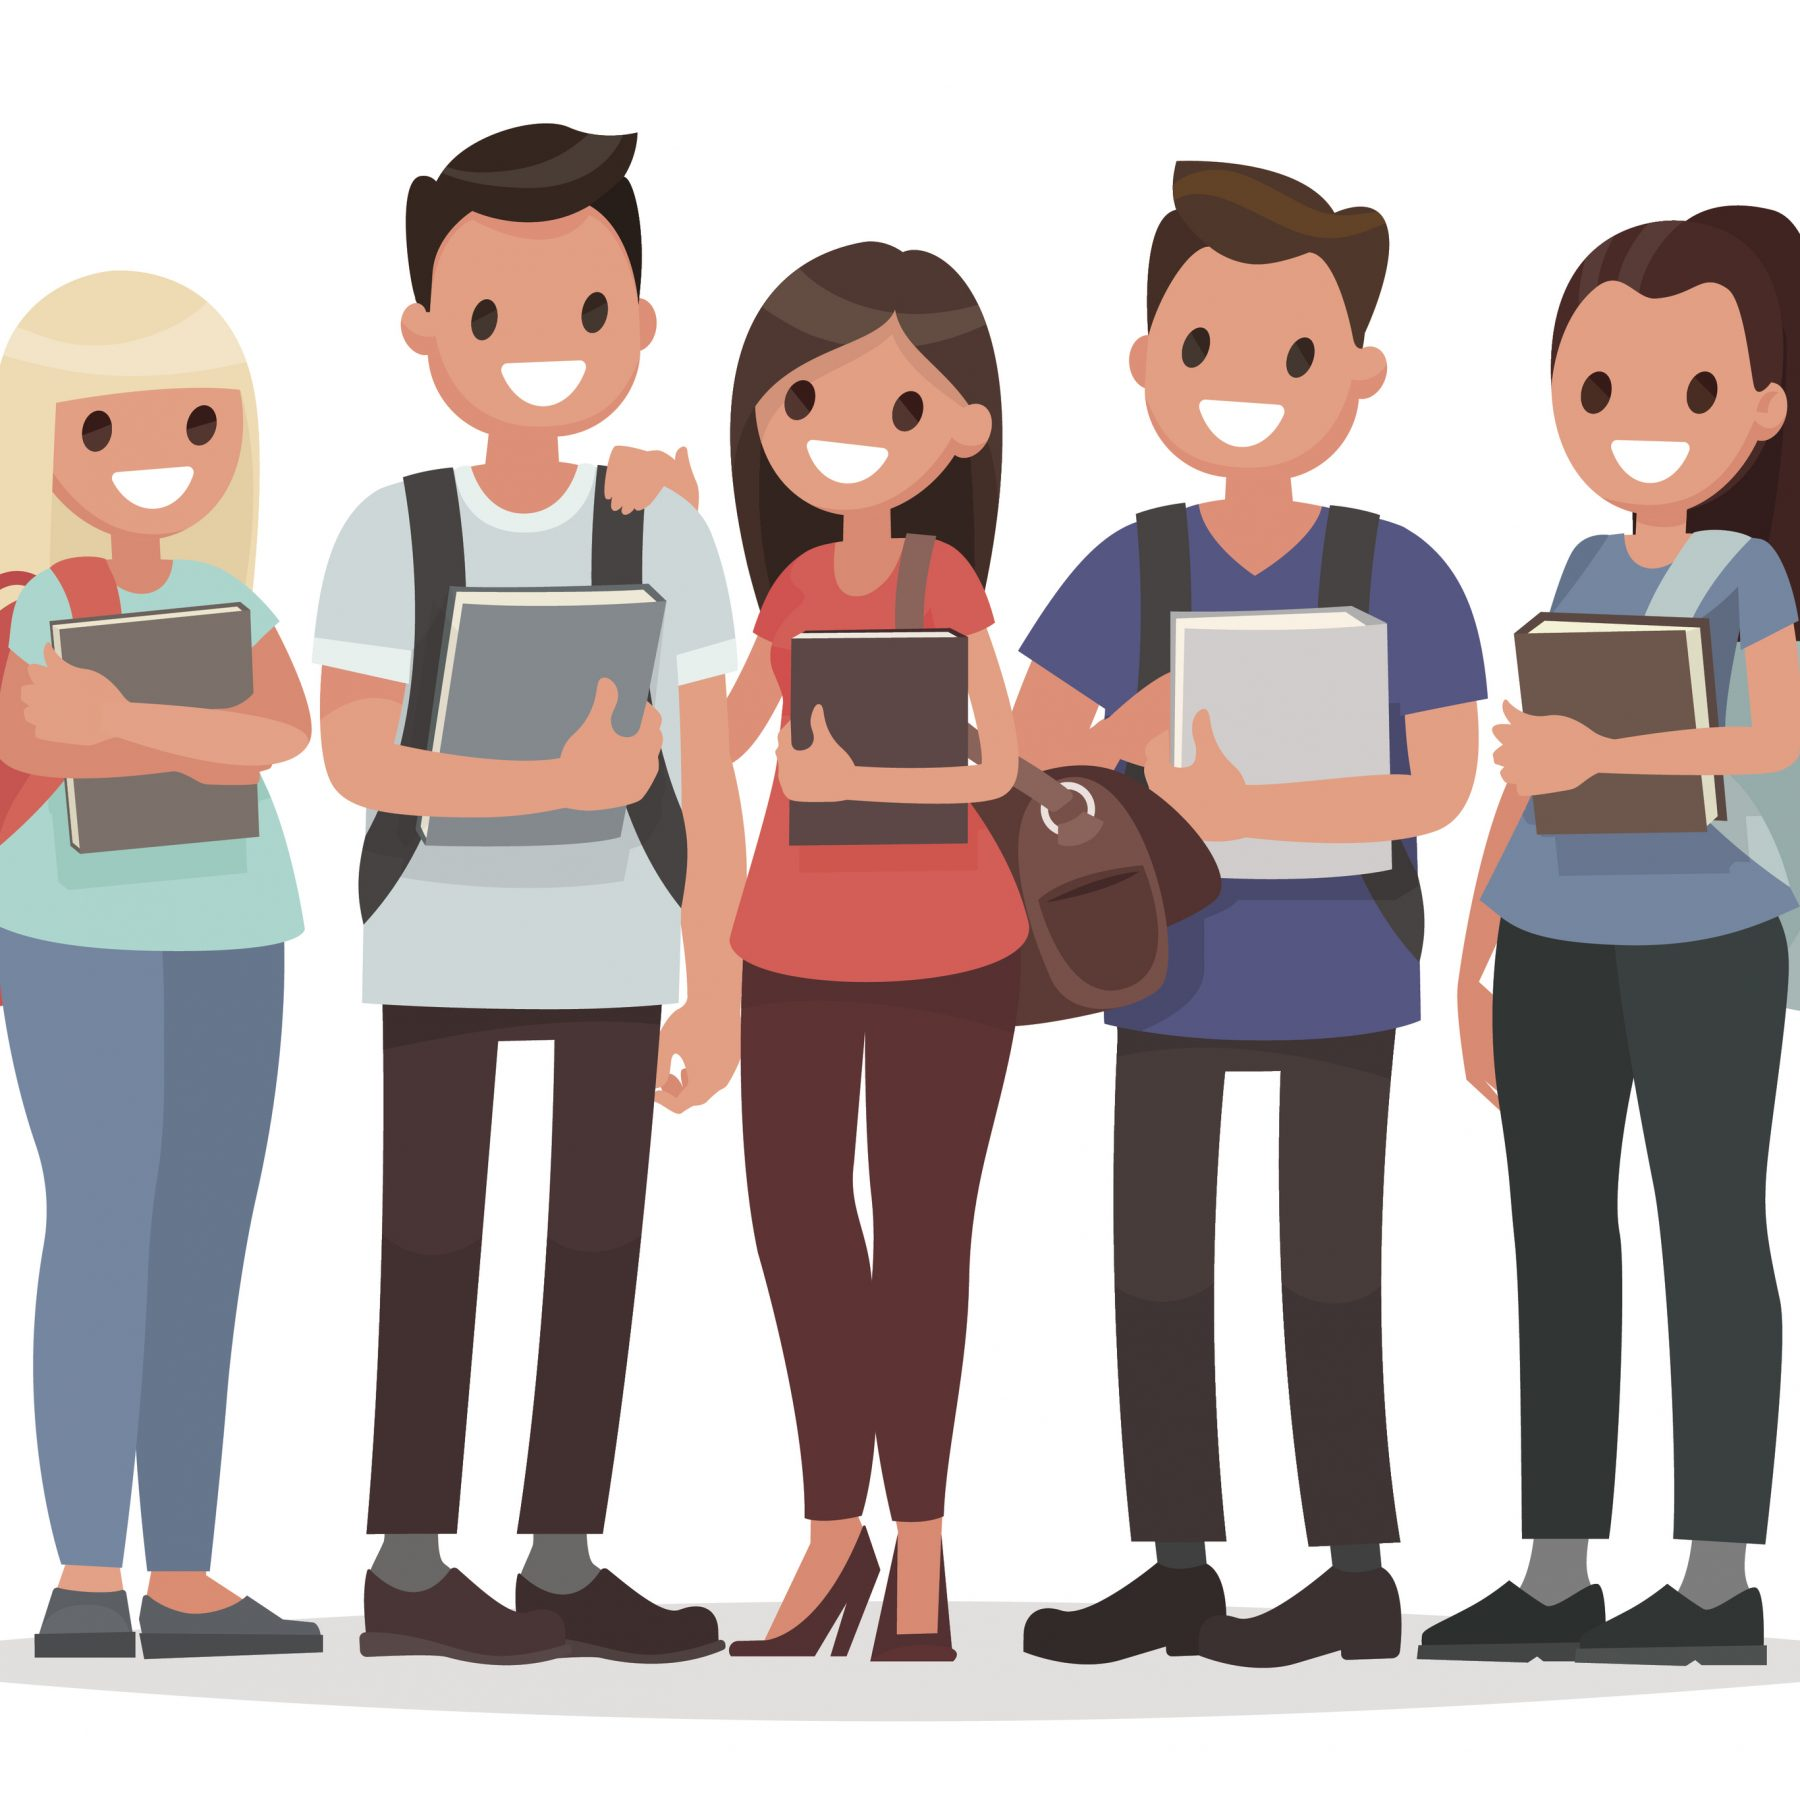 People and Education. Group of happy students with books on an isolated background. Vector illustration in a flat style